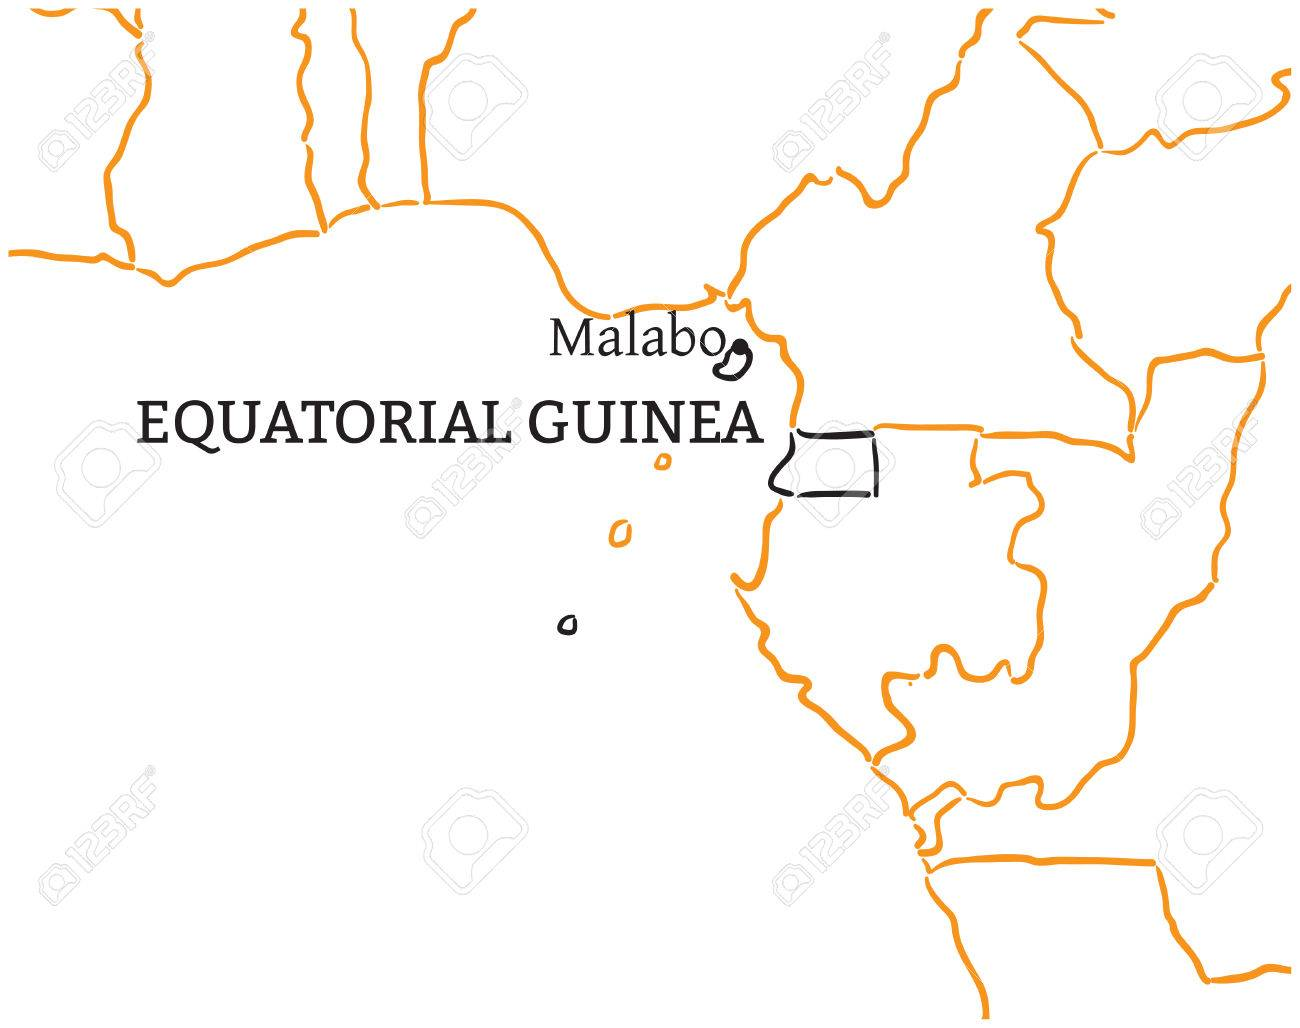 Equatorial Guinea Country With Its Capital Malabo In Africa Hand